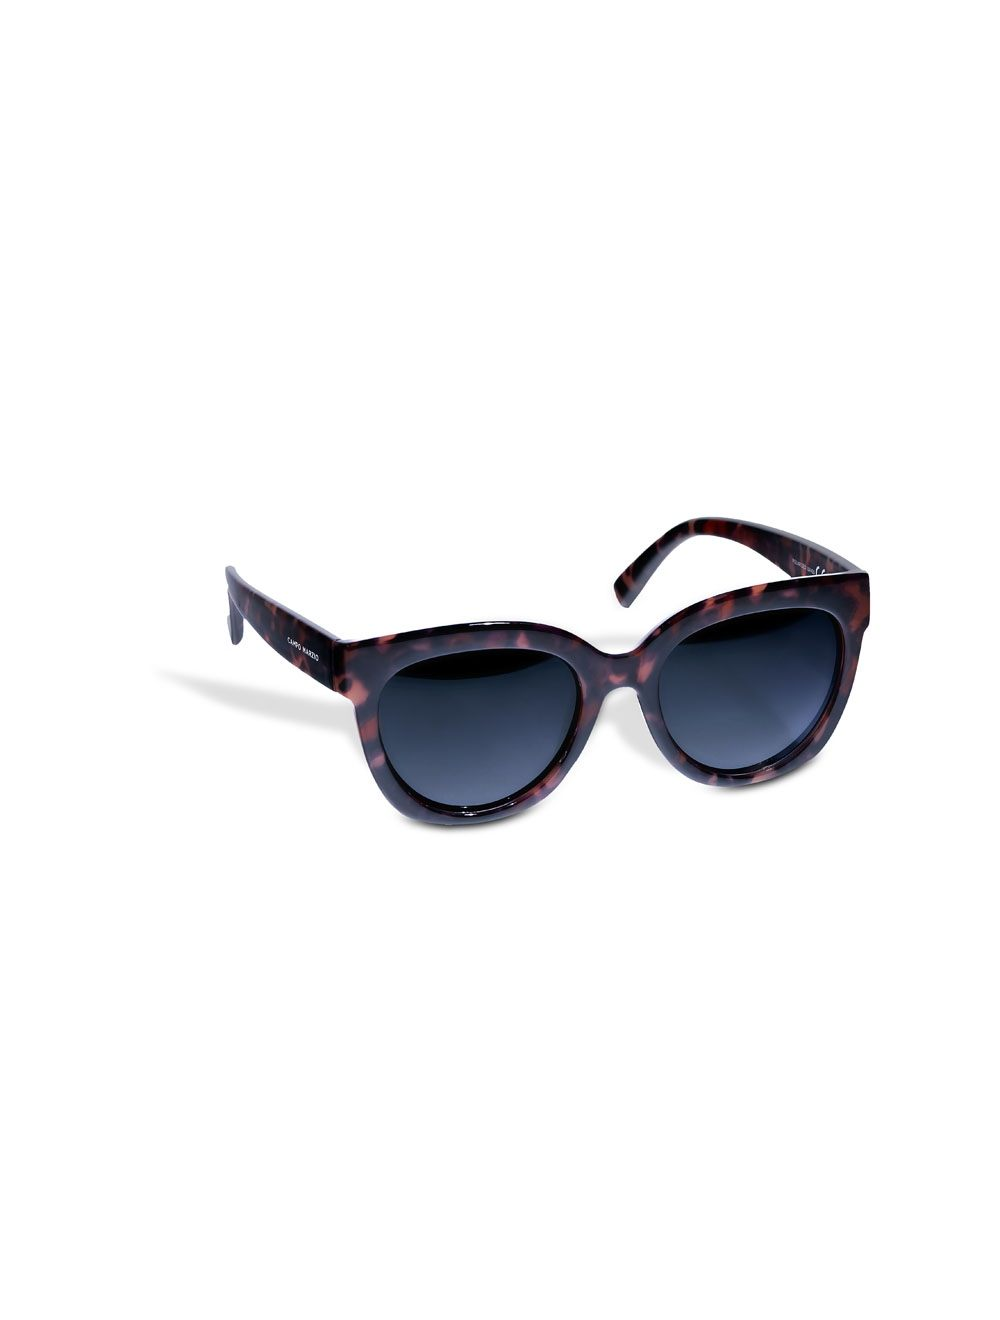 Jo Sunglasses - Space Blue